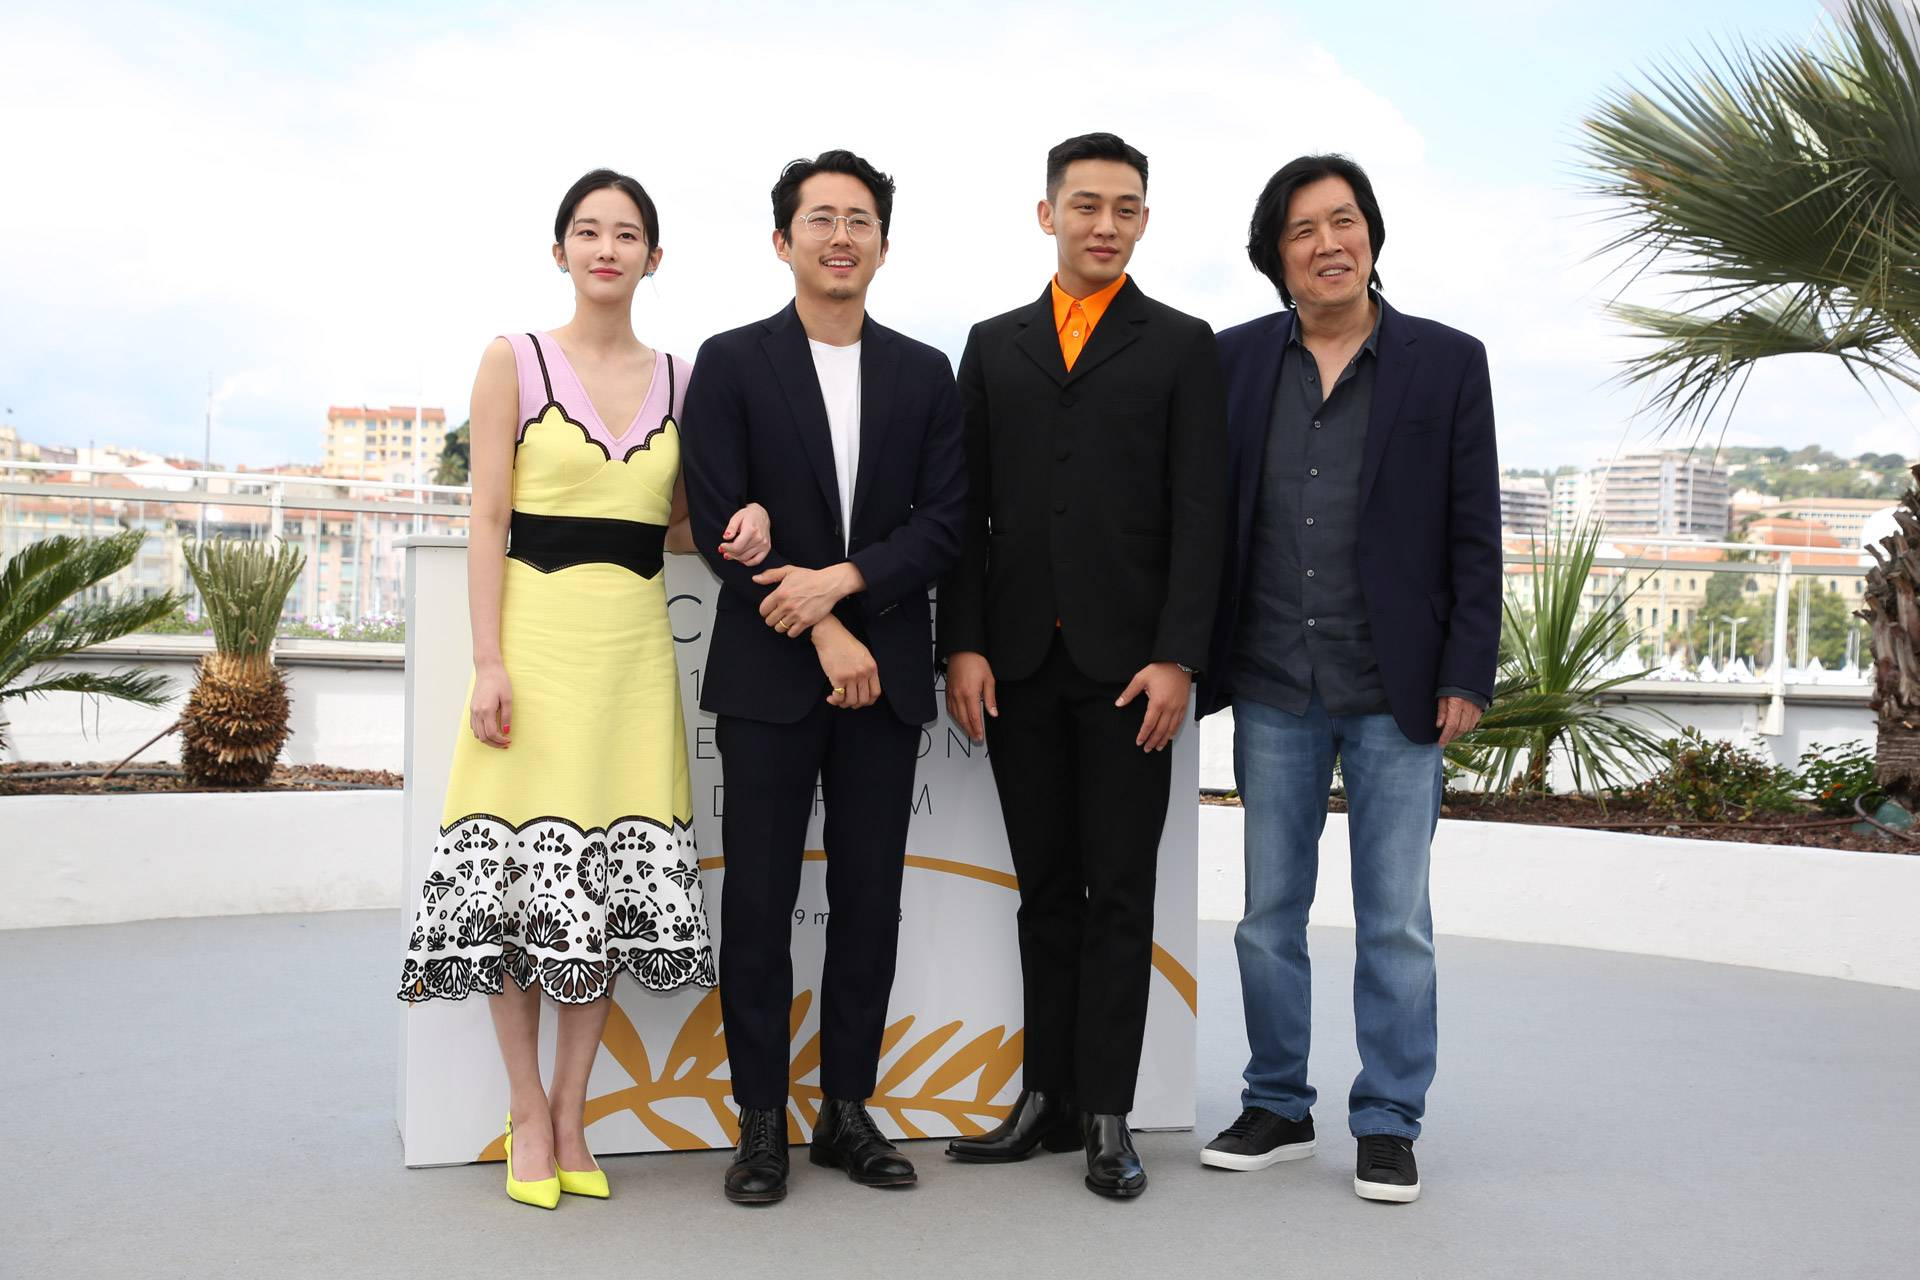 Photos Jun Jong Seo Steven Yeun Yoo Ah In And Director Lee Chang Dong For Cannes Film Festival Burning Photocall